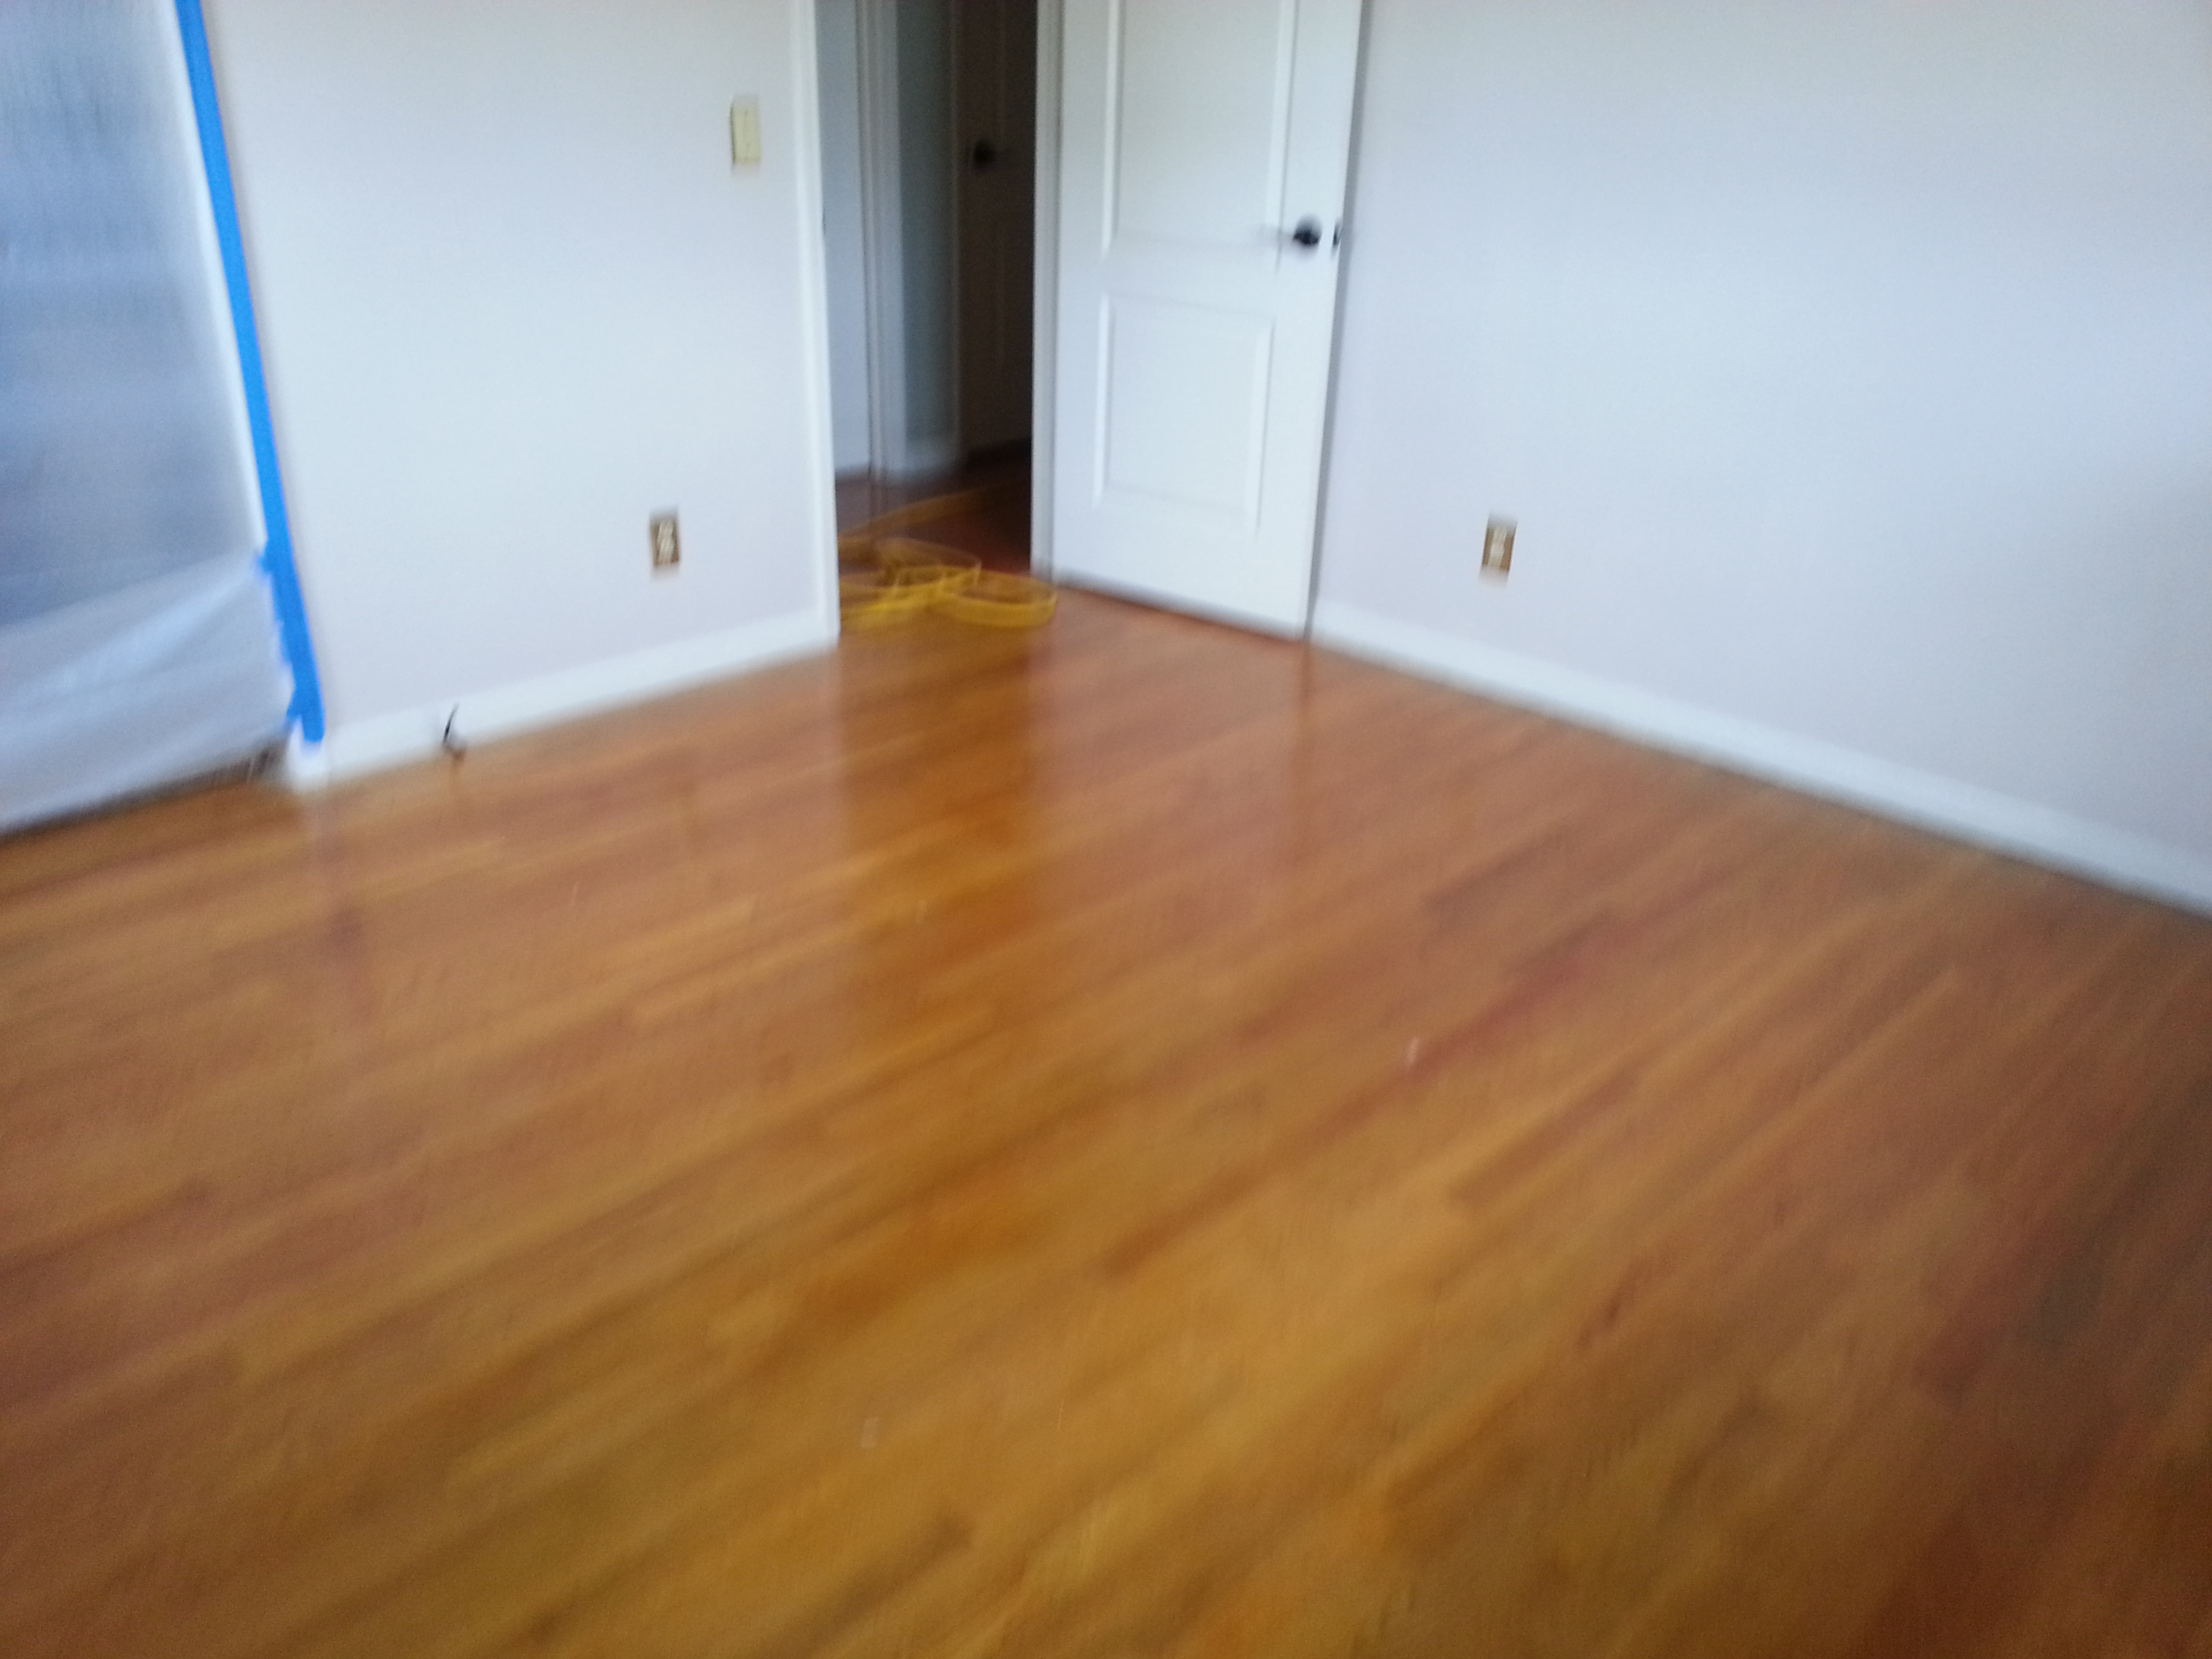 hardwood floor refinishing huntsville al of planet hardwood huntsville al 35801 yp com regarding 2f409ff89d171e4c59933f65539564c2160f6ebb